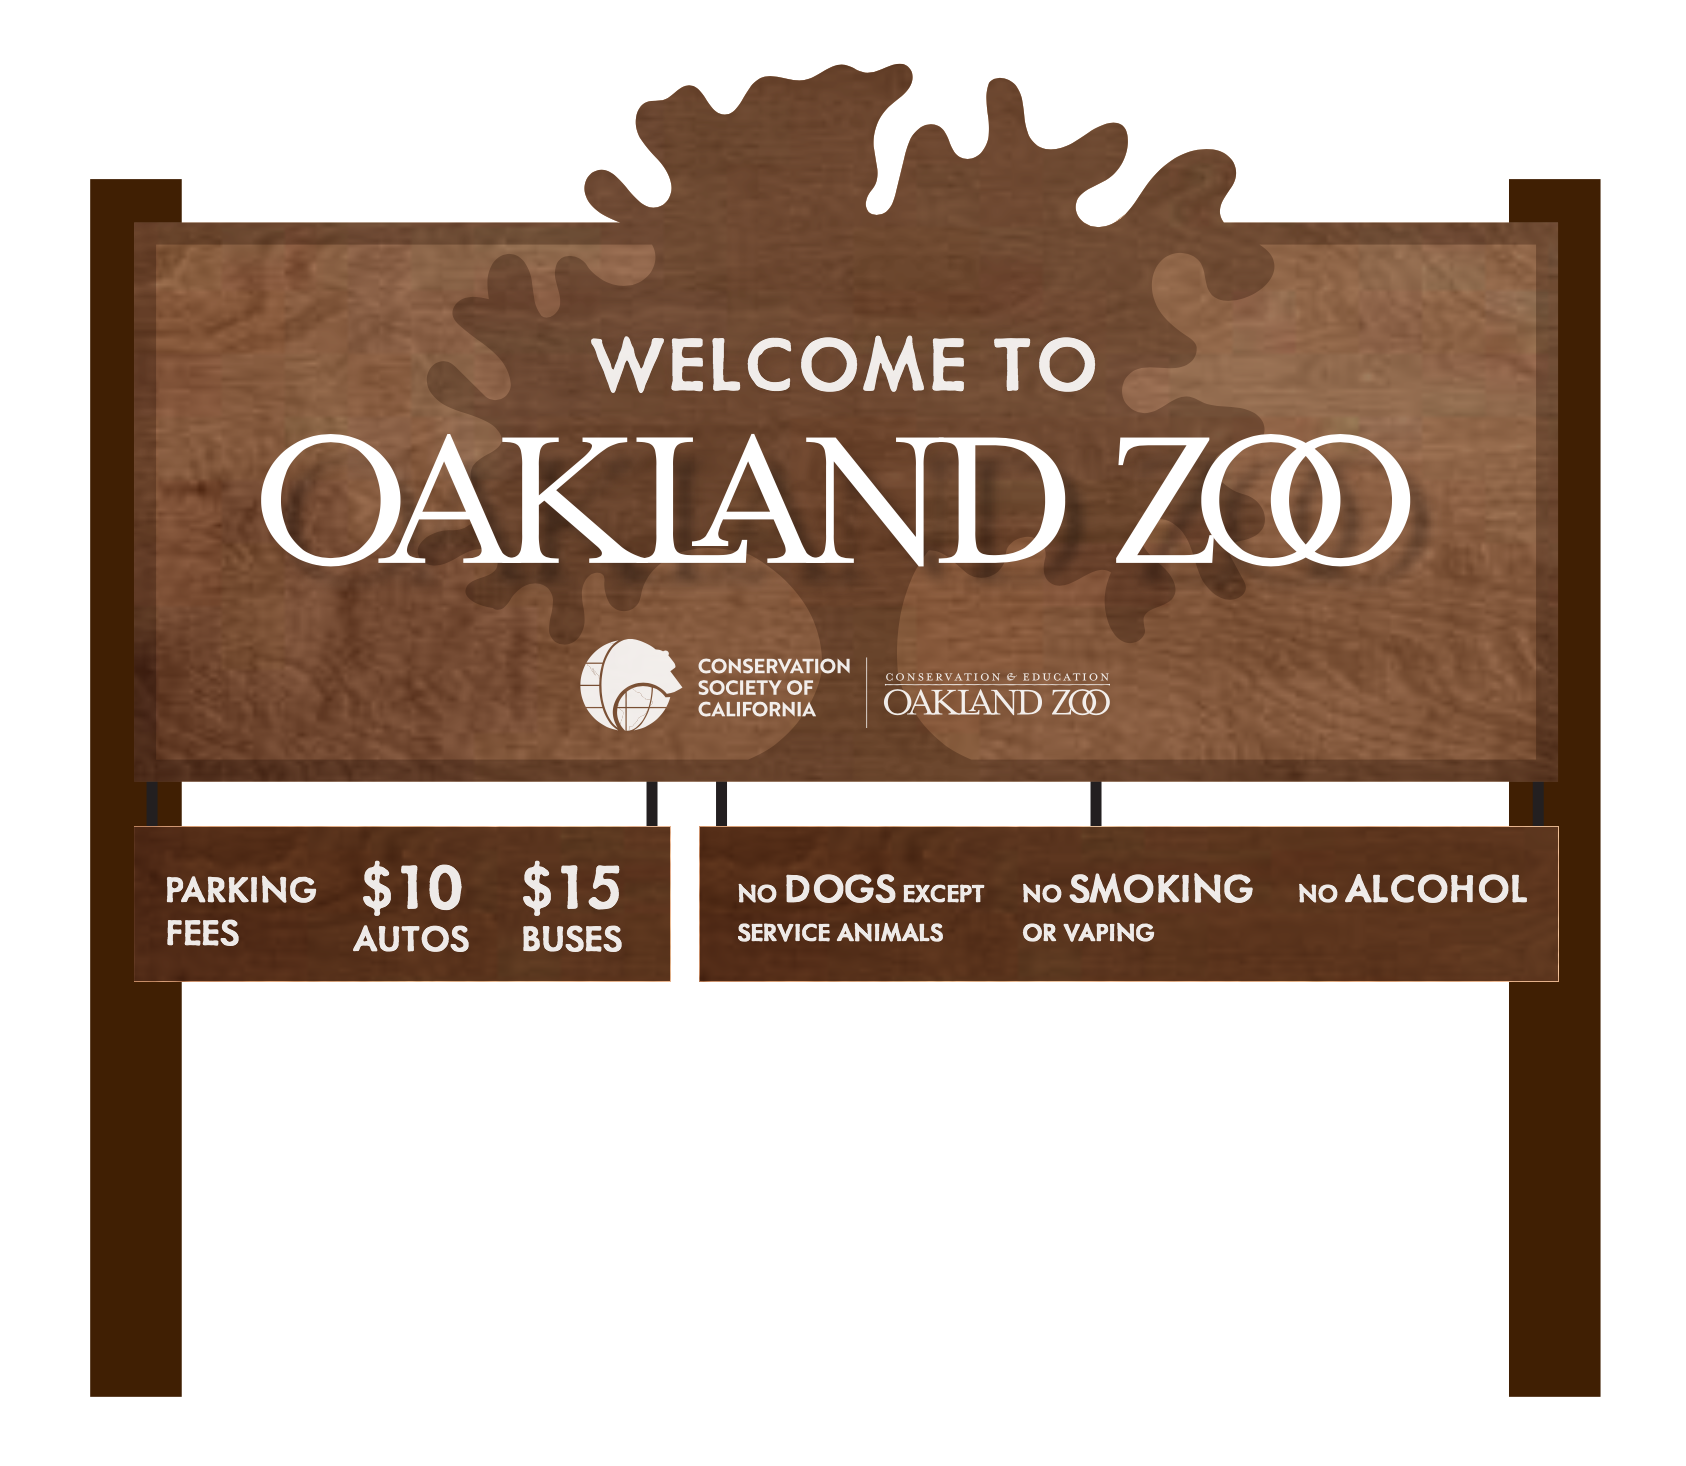 Oakland zoo national park style post sign mockup